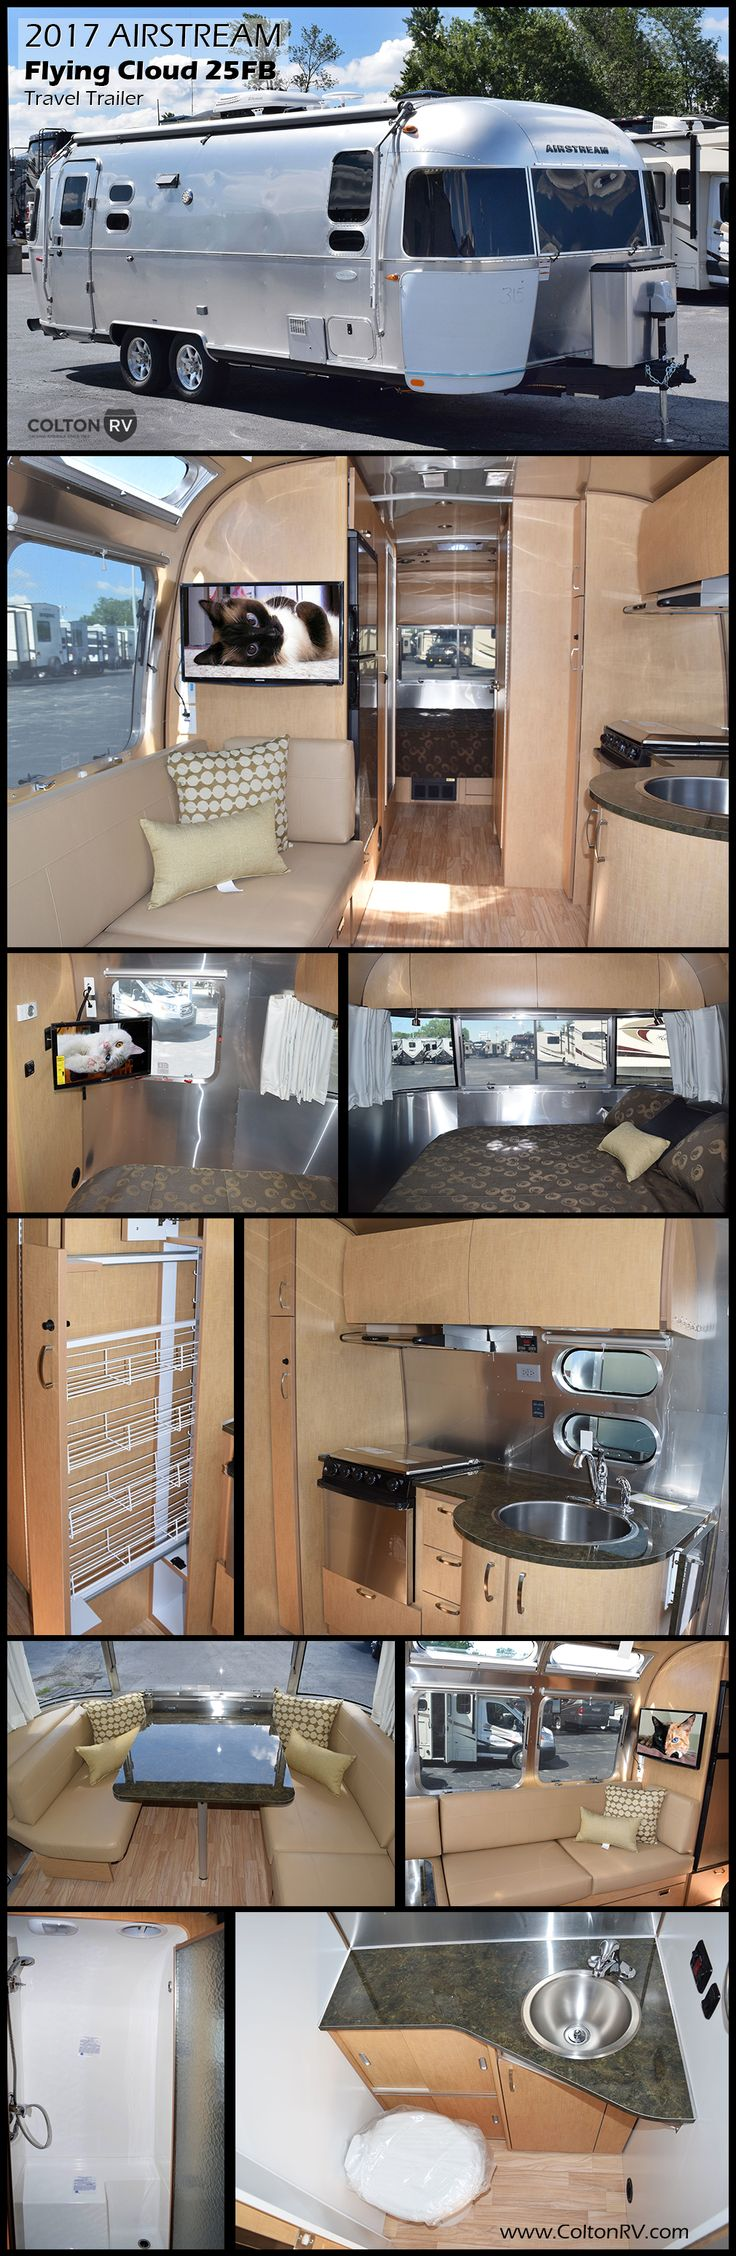 "2017 AIRSTREAM FLYING CLOUD 25FB Travel Trailer. Practical and efficient, the Flying Cloud invites you inside with the flair of modern design. Compared to its ""box-shaped"" competitors, it'll last longer, require less maintenance, offer better stability when towing, and cost less at the fuel pump."